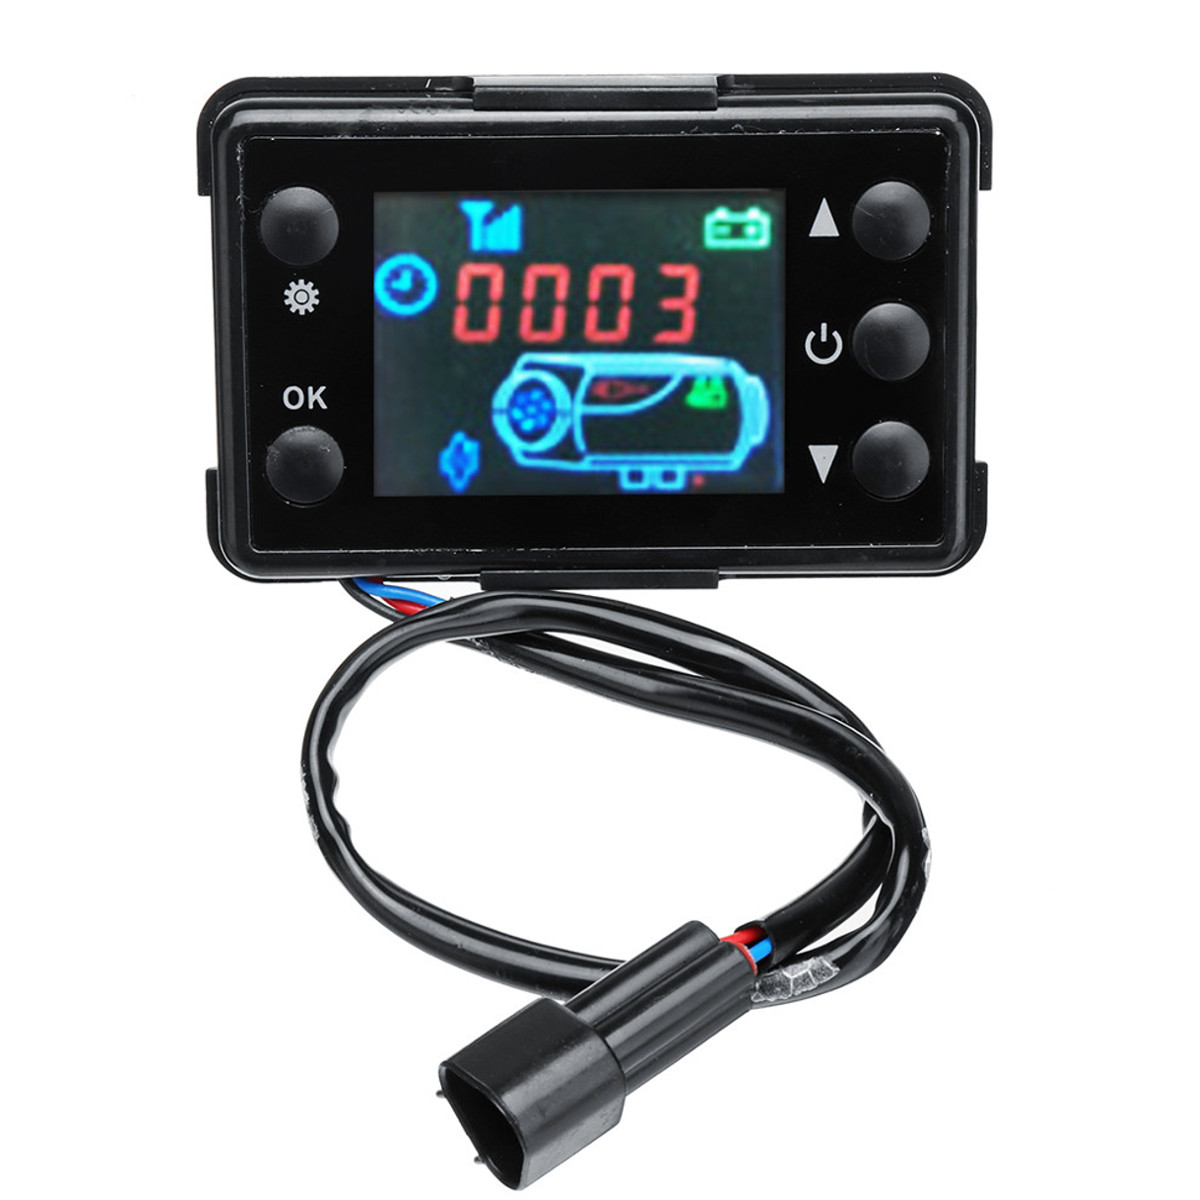 Controllers 12v/24v 3/5kw Lcd Monitor Parking Heater Switch Car Heating Device Controller Universal For Car Track Air Heater Skilful Manufacture